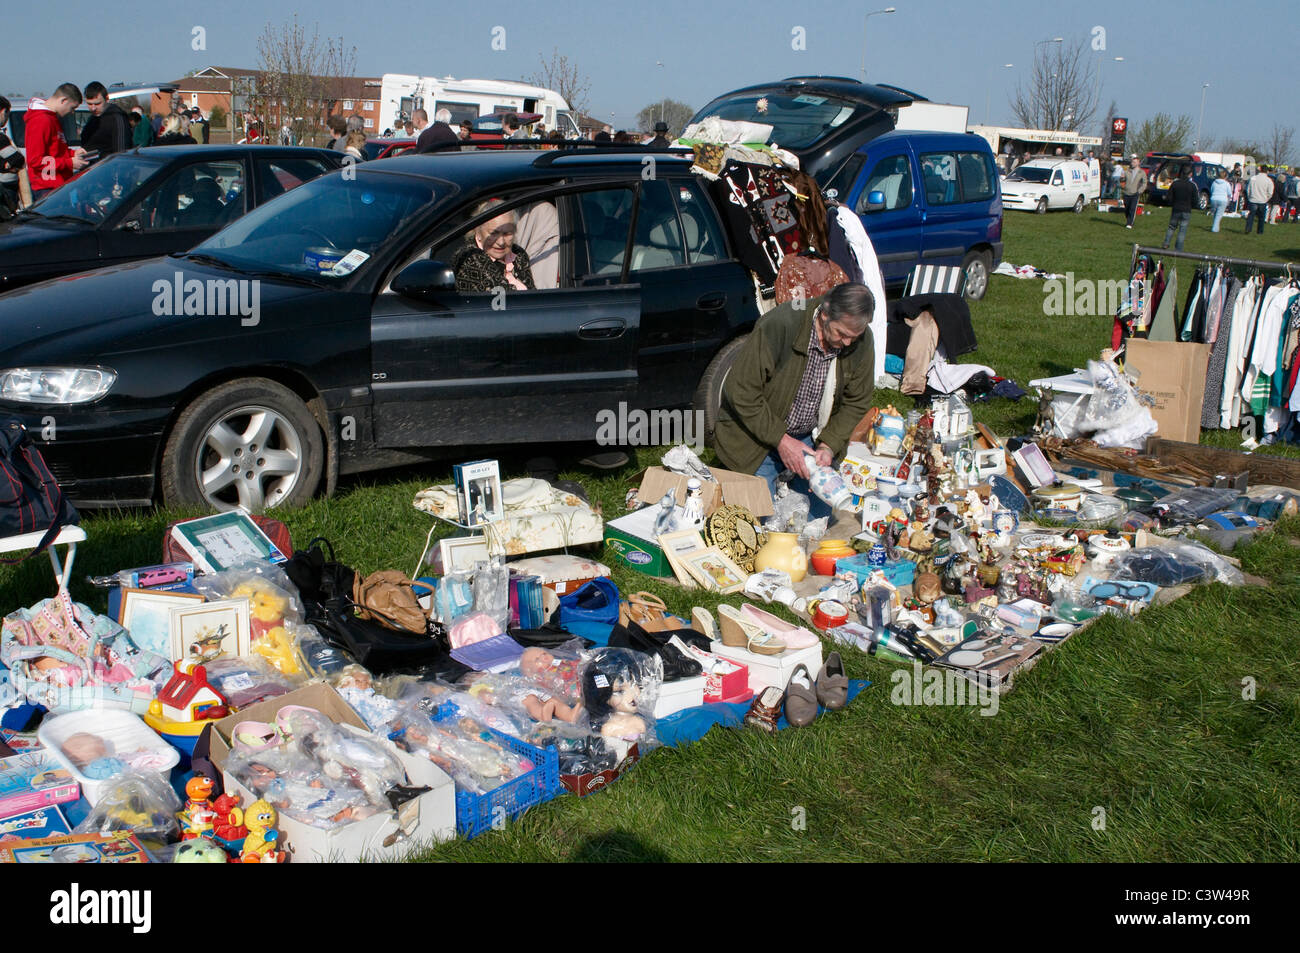 A busy car boot sale in lincolnshire